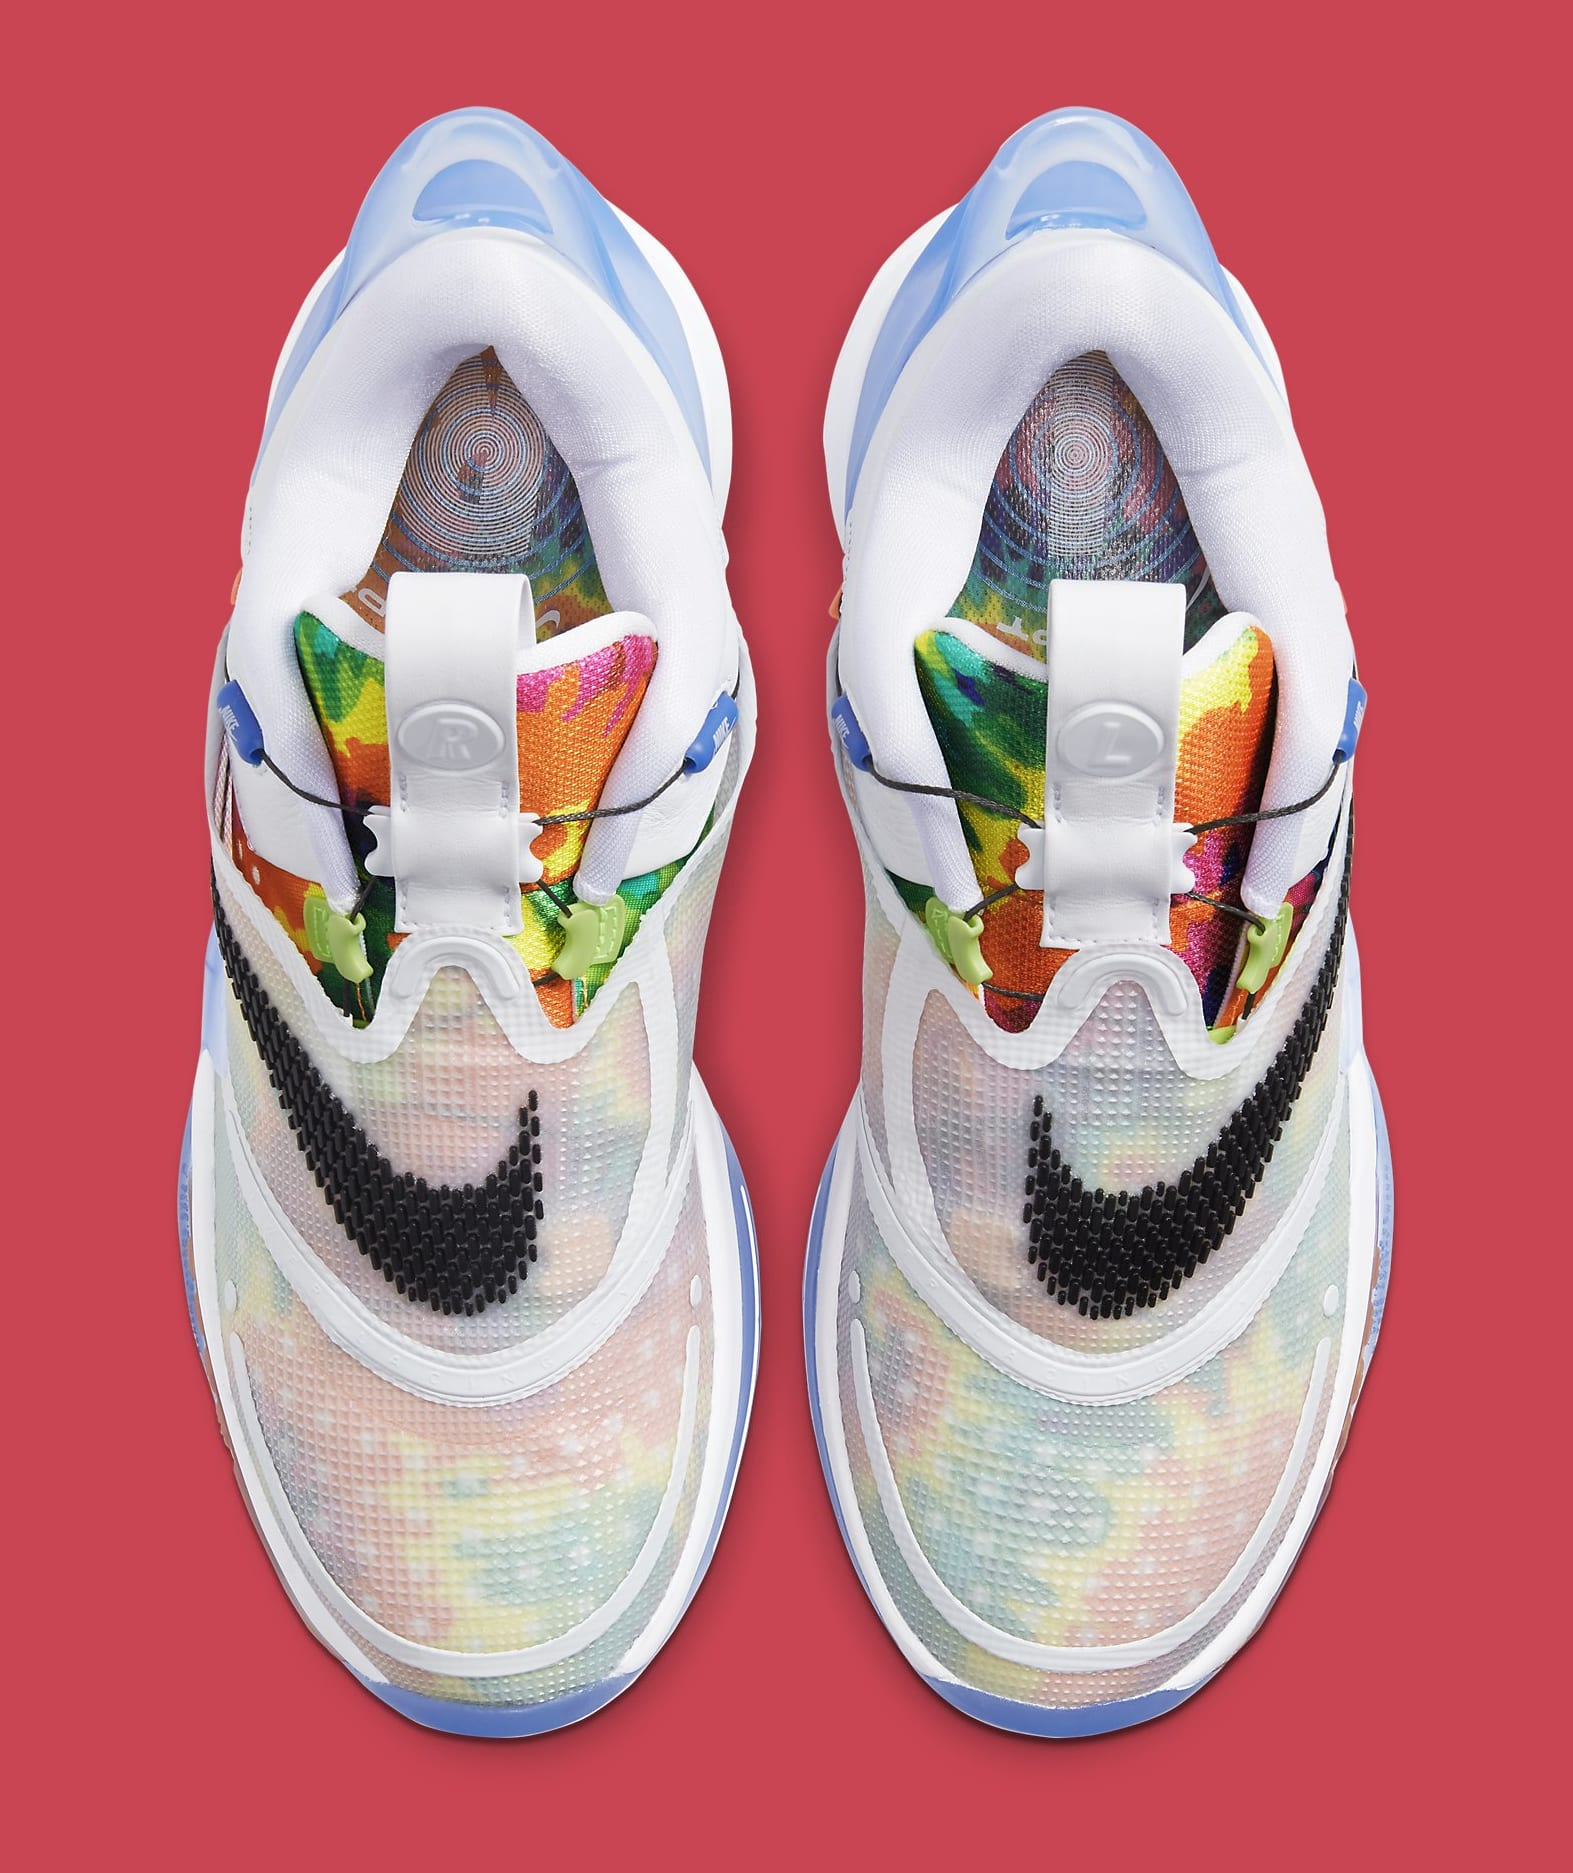 Nike Adapt BB 2.0 'Tie-Dye' BQ5397-100 Top